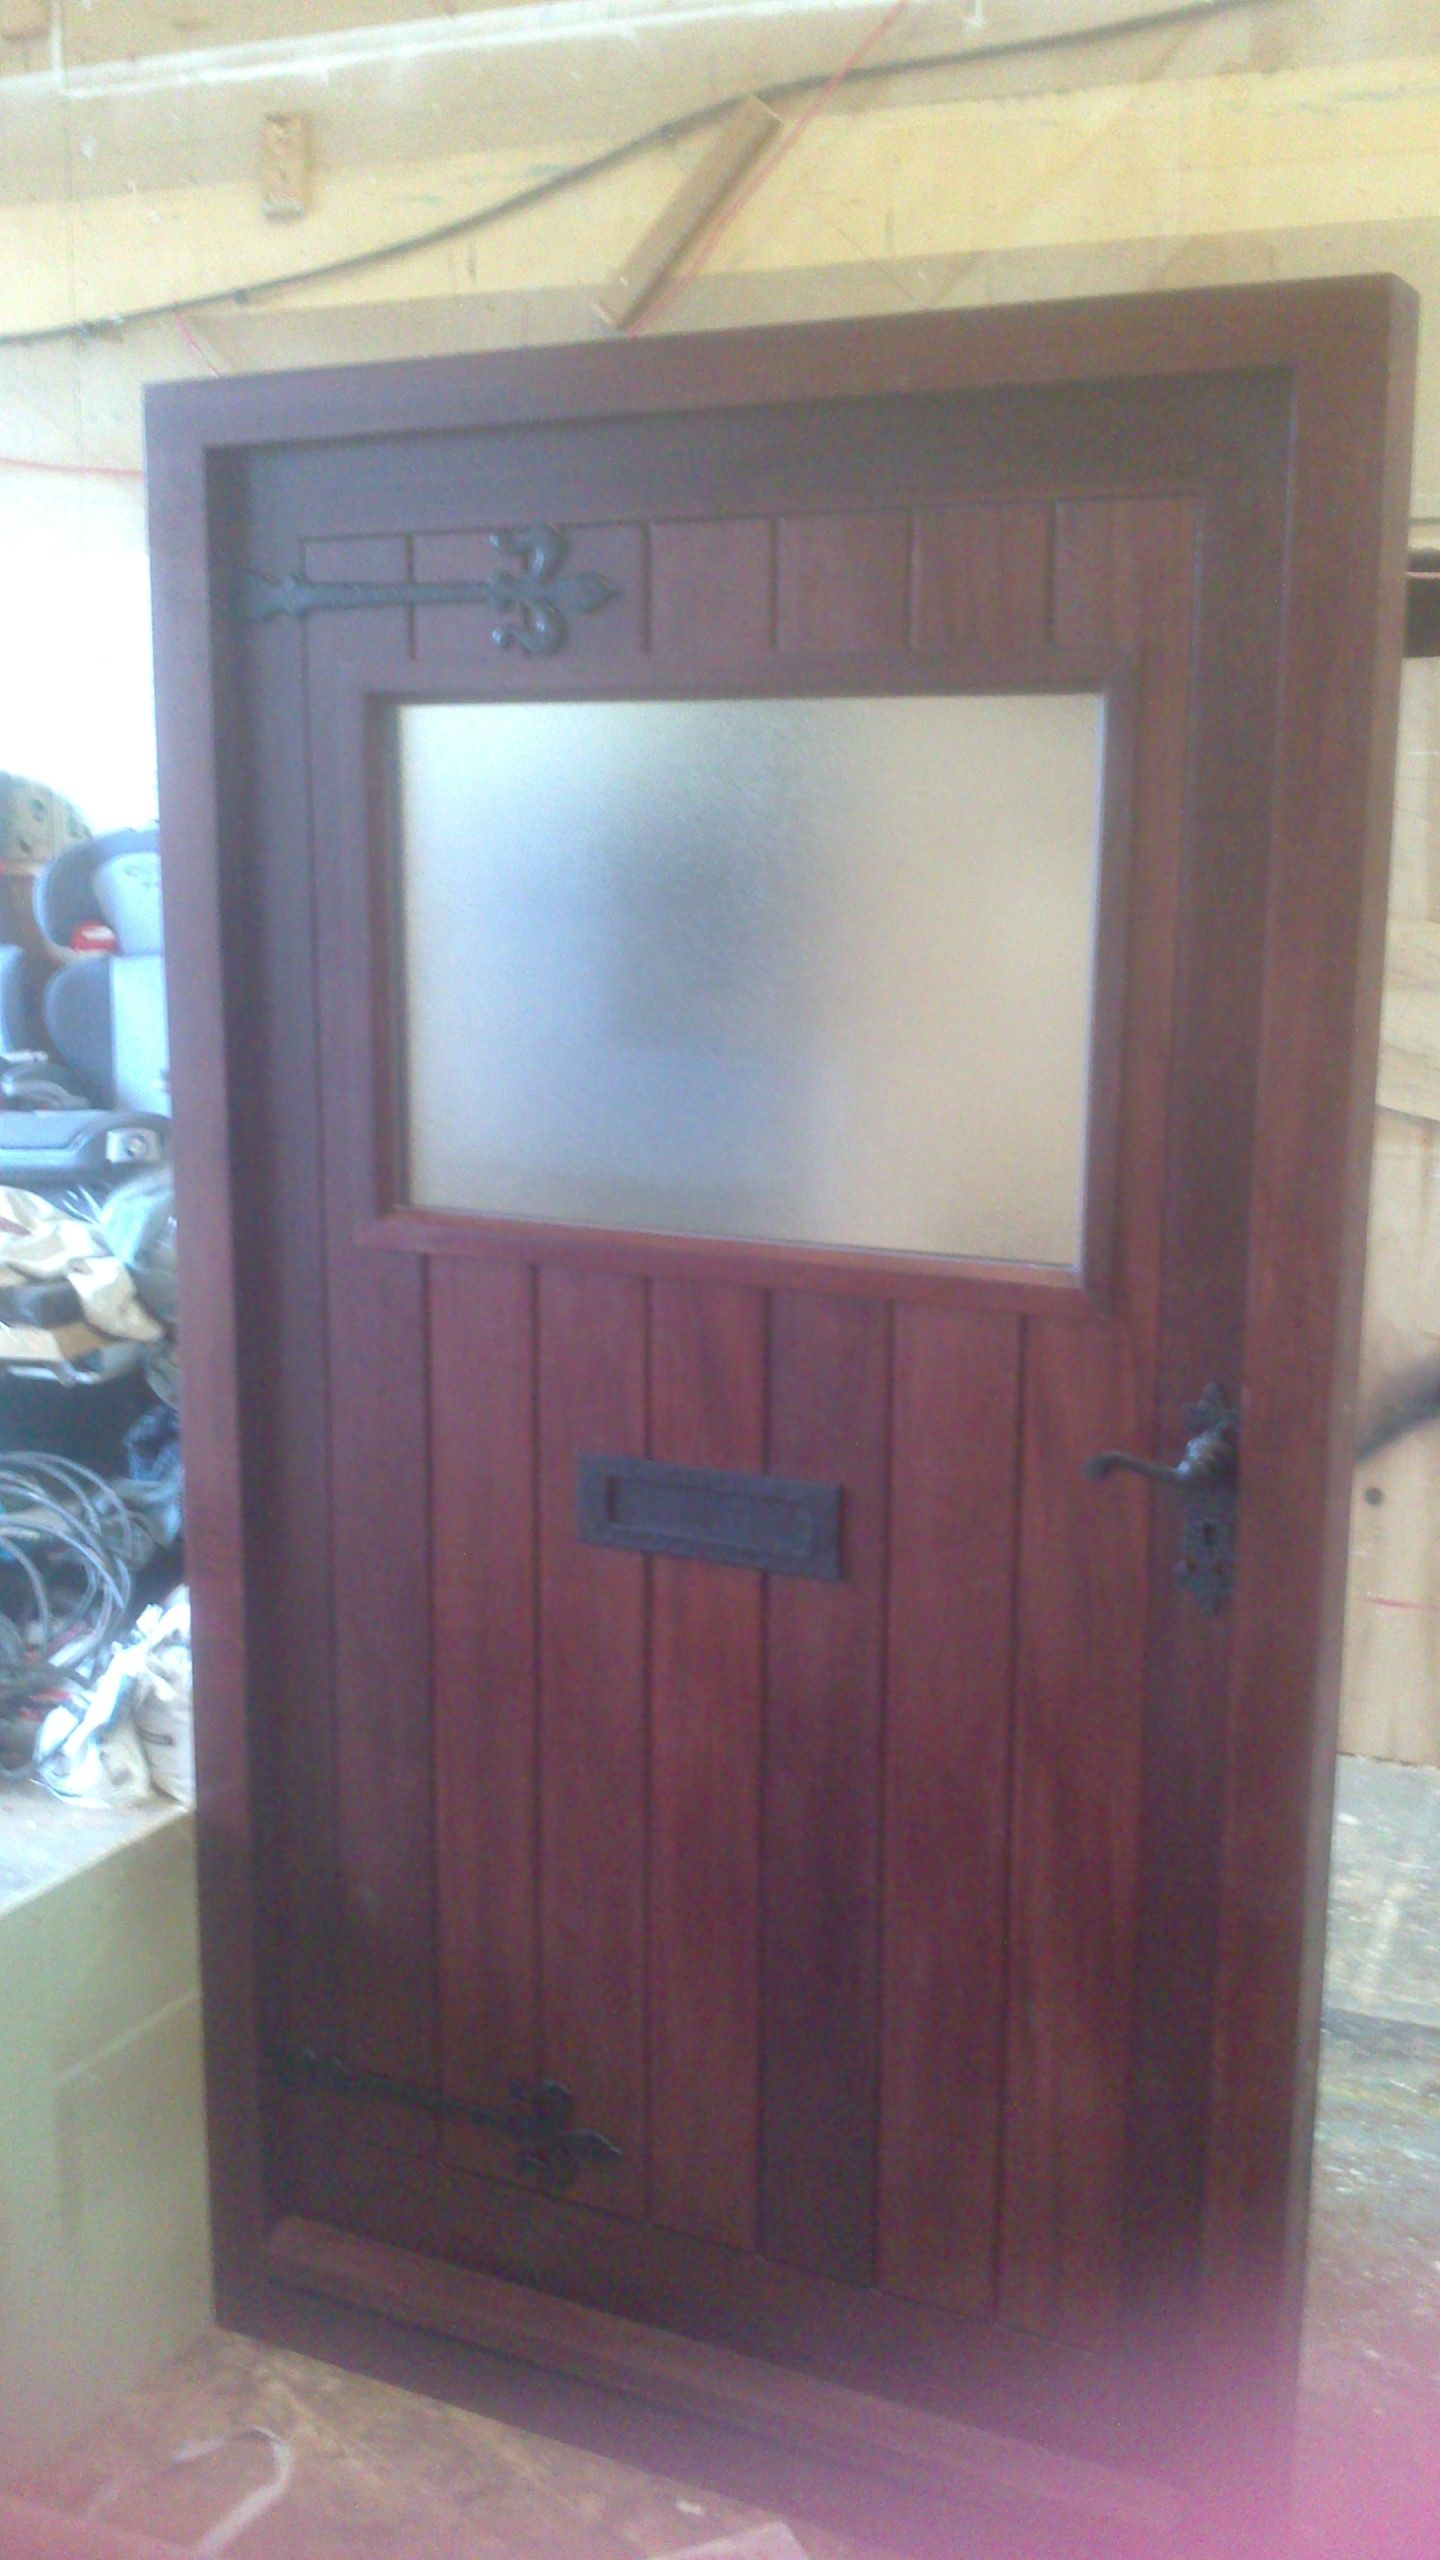 Sapele door with extra large obscured glass viewing panel